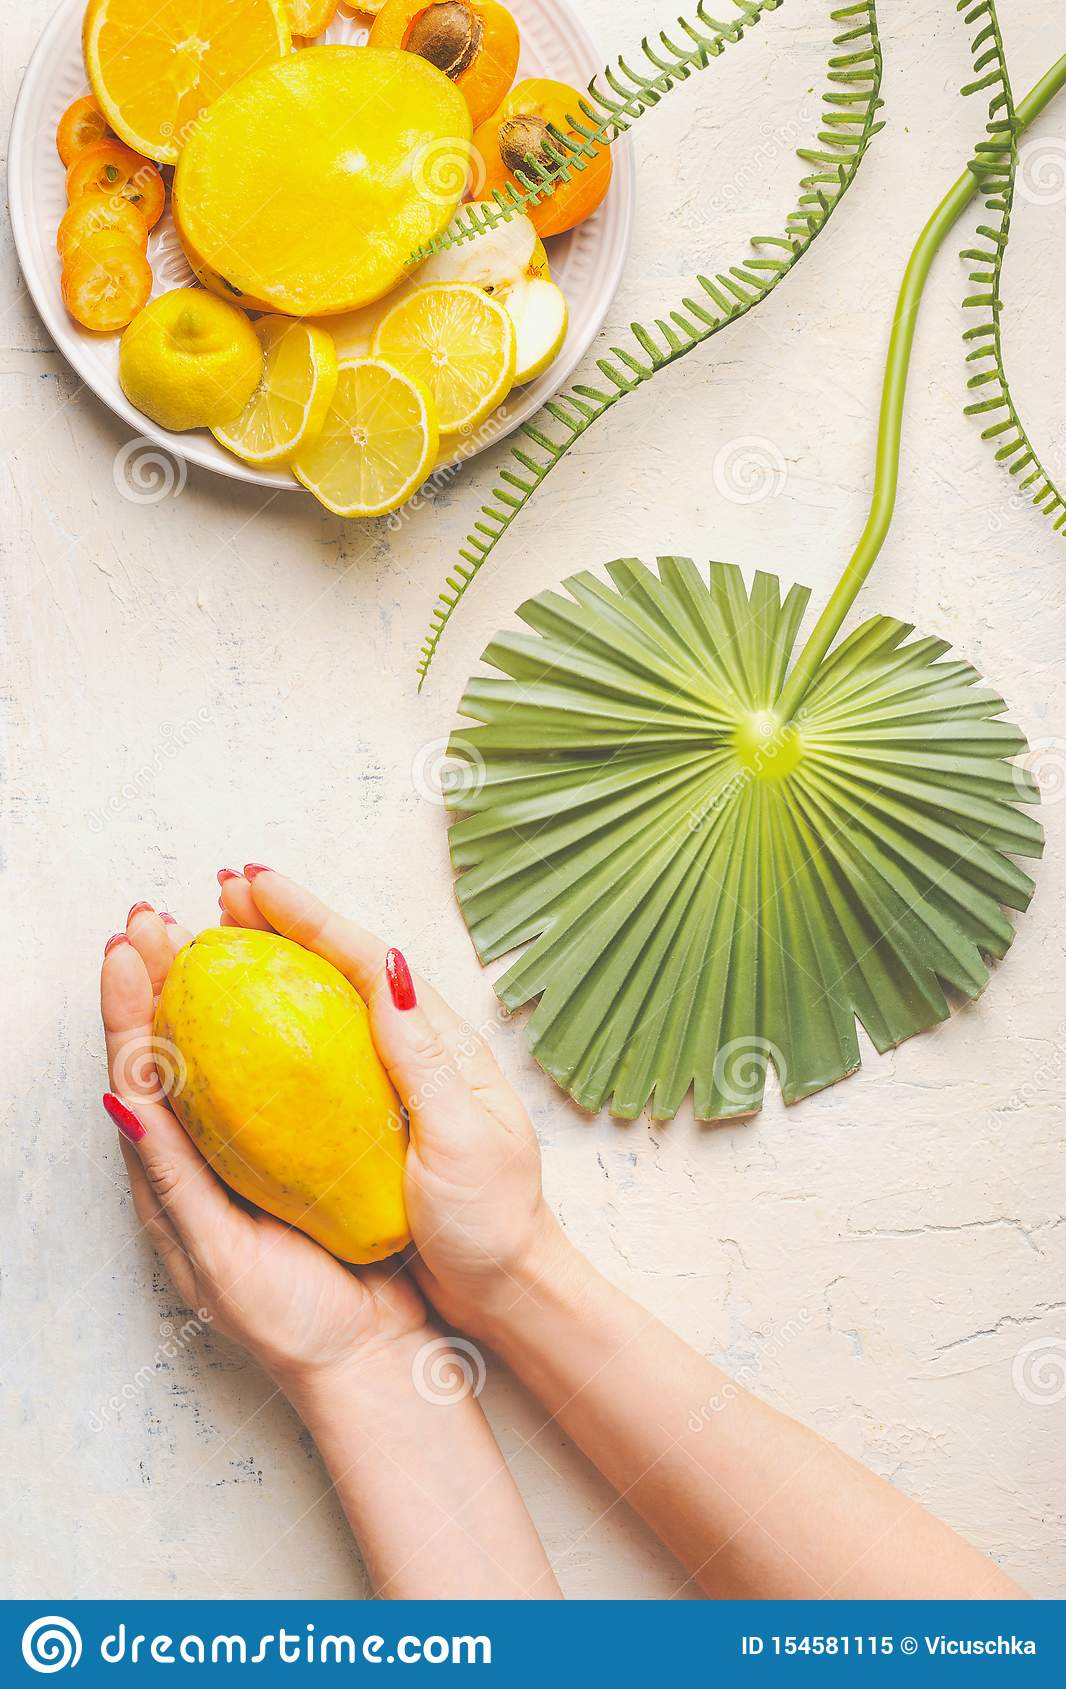 Female hands holding whole papaya fruit on white table with tropical leaves and plate with yellow sliced fruits, top view. Summer